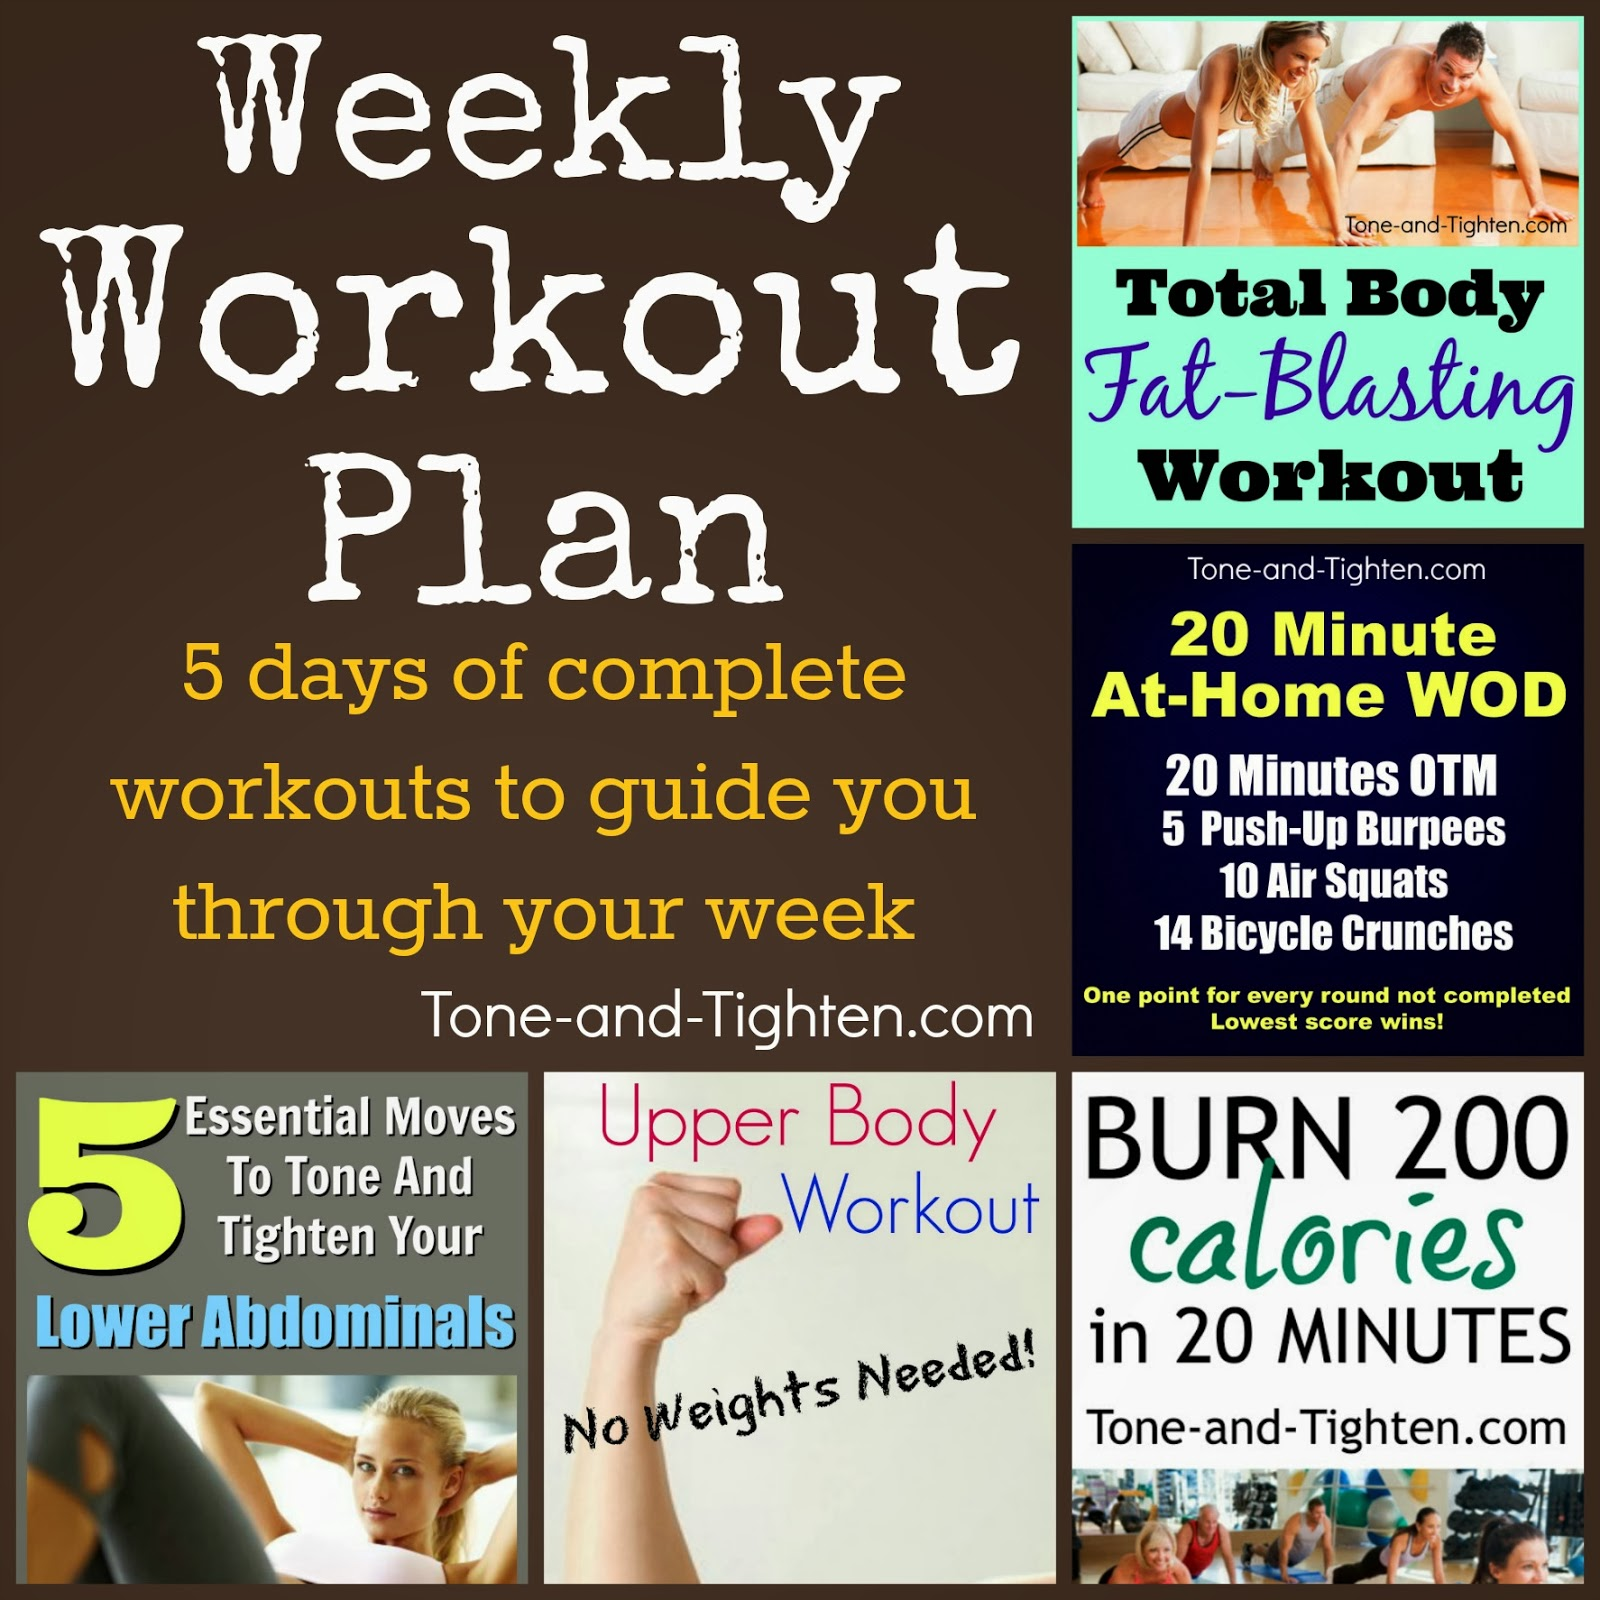 Weekly Workout Plans – Weekly Workout Plan